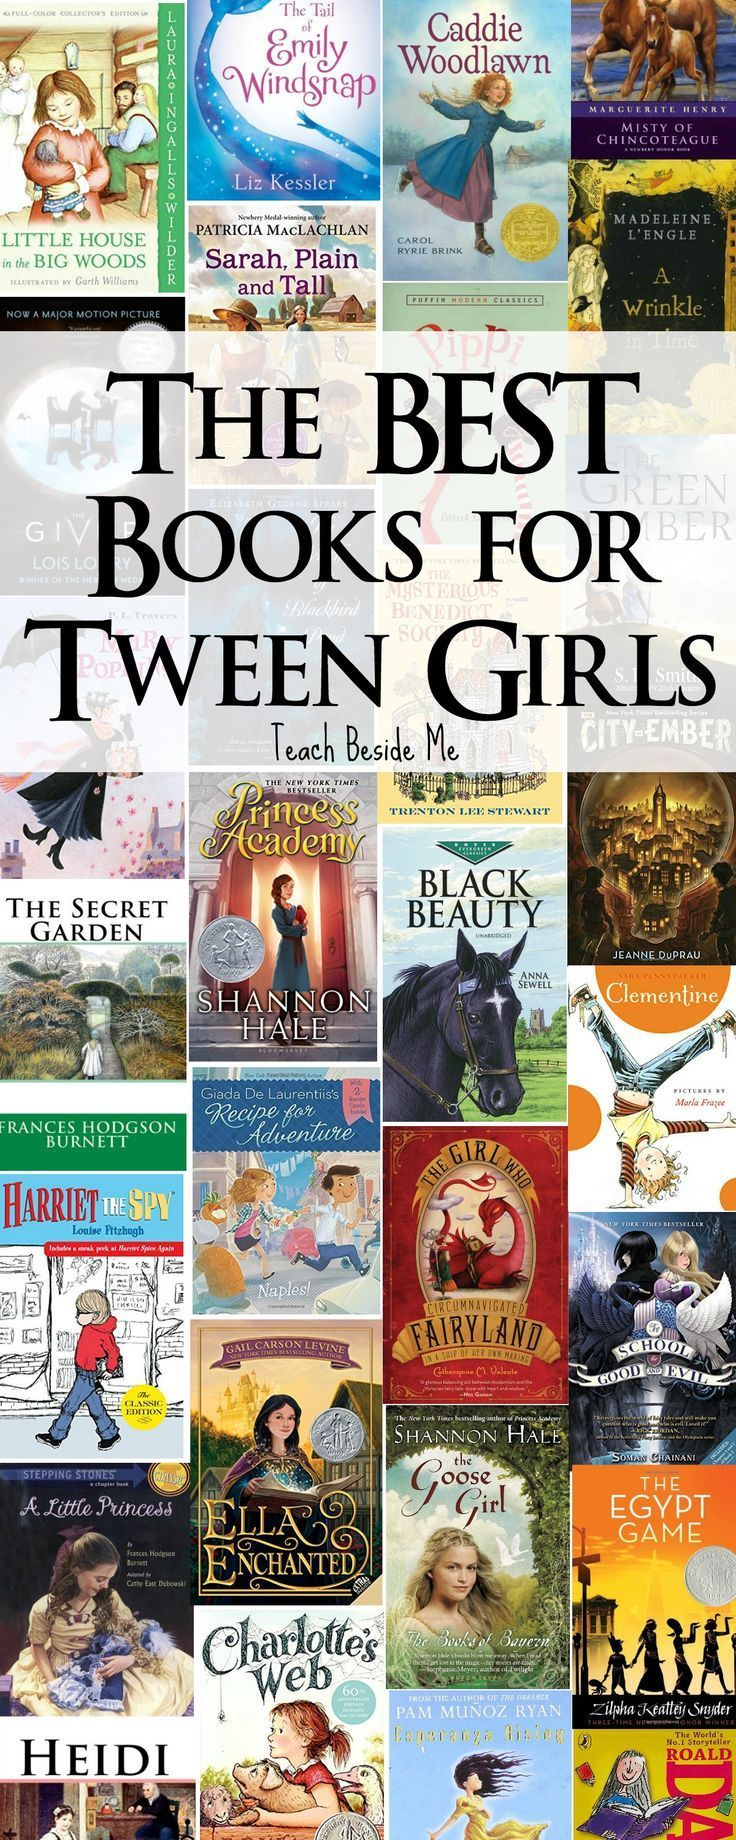 Awesome book list for tween girls (ages 8-12)